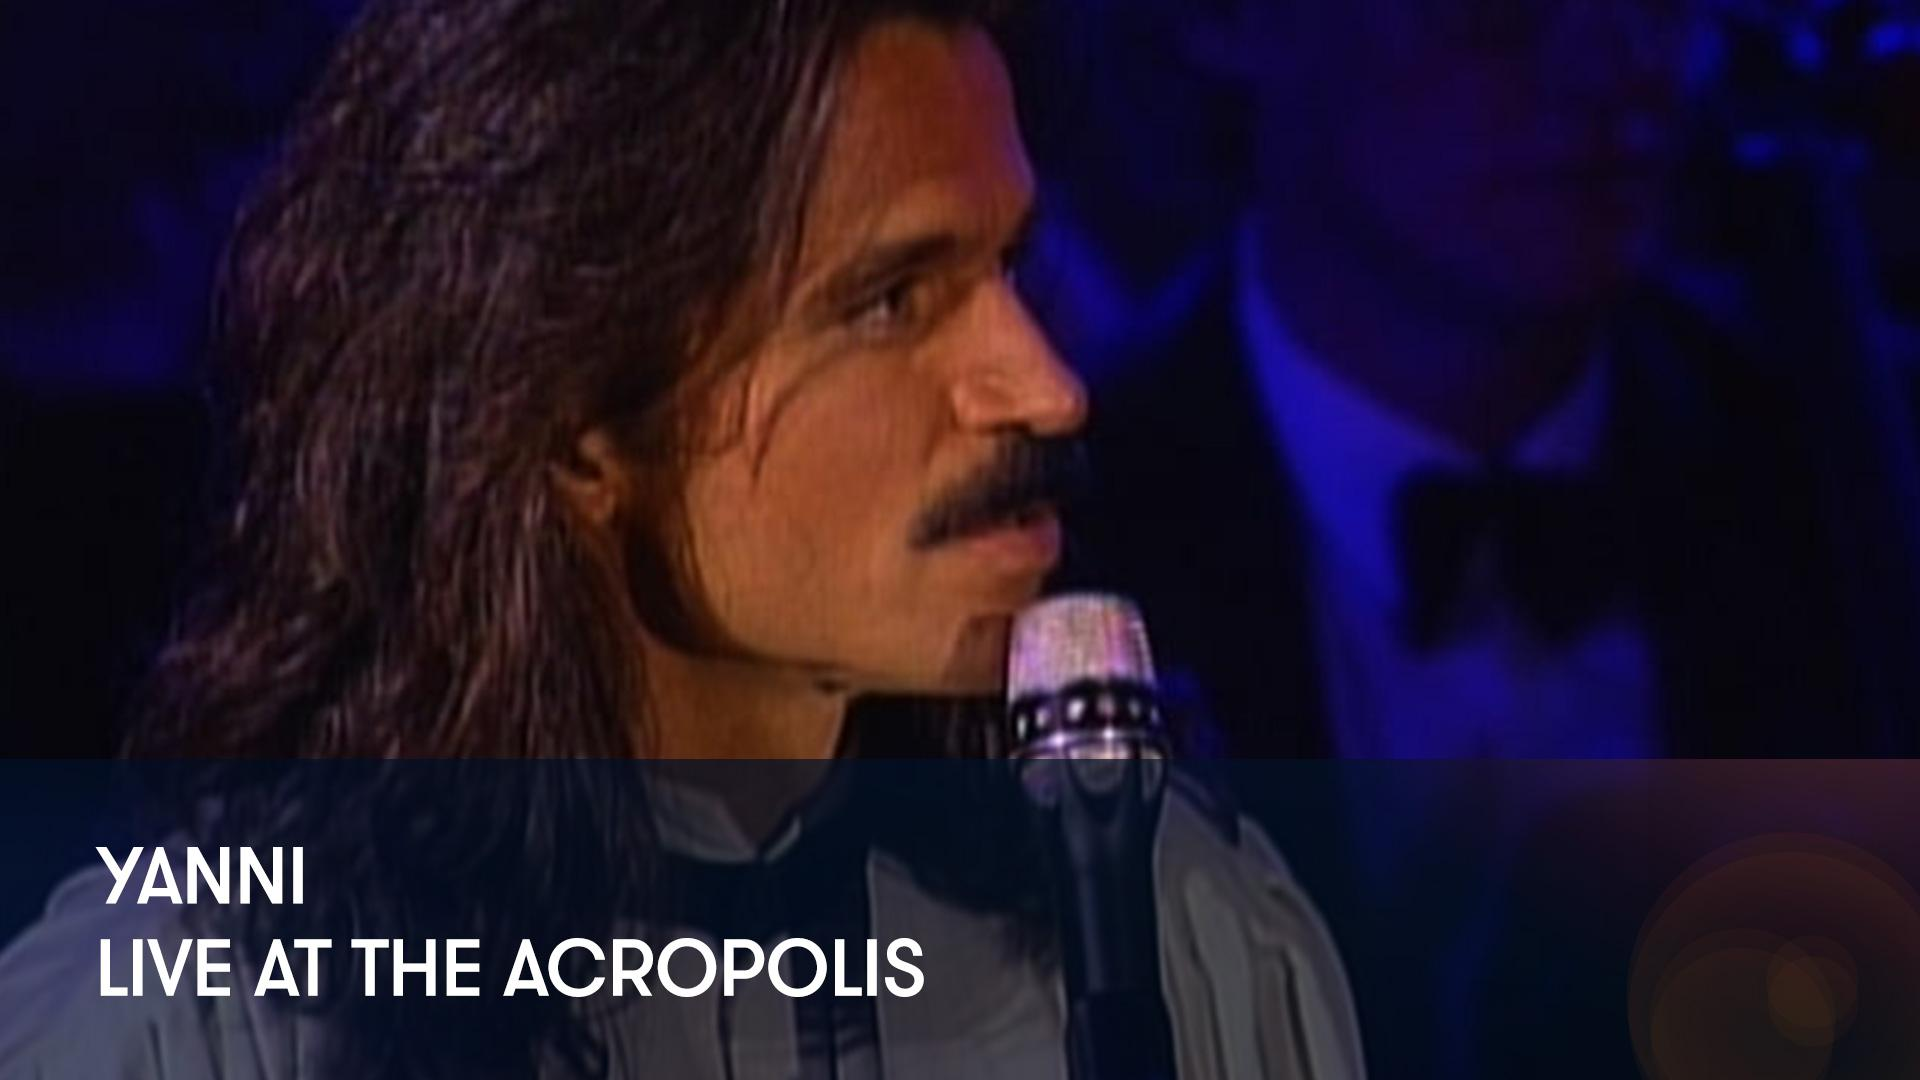 Stream And Watch Yanni in Concert: Live at the Acropolis